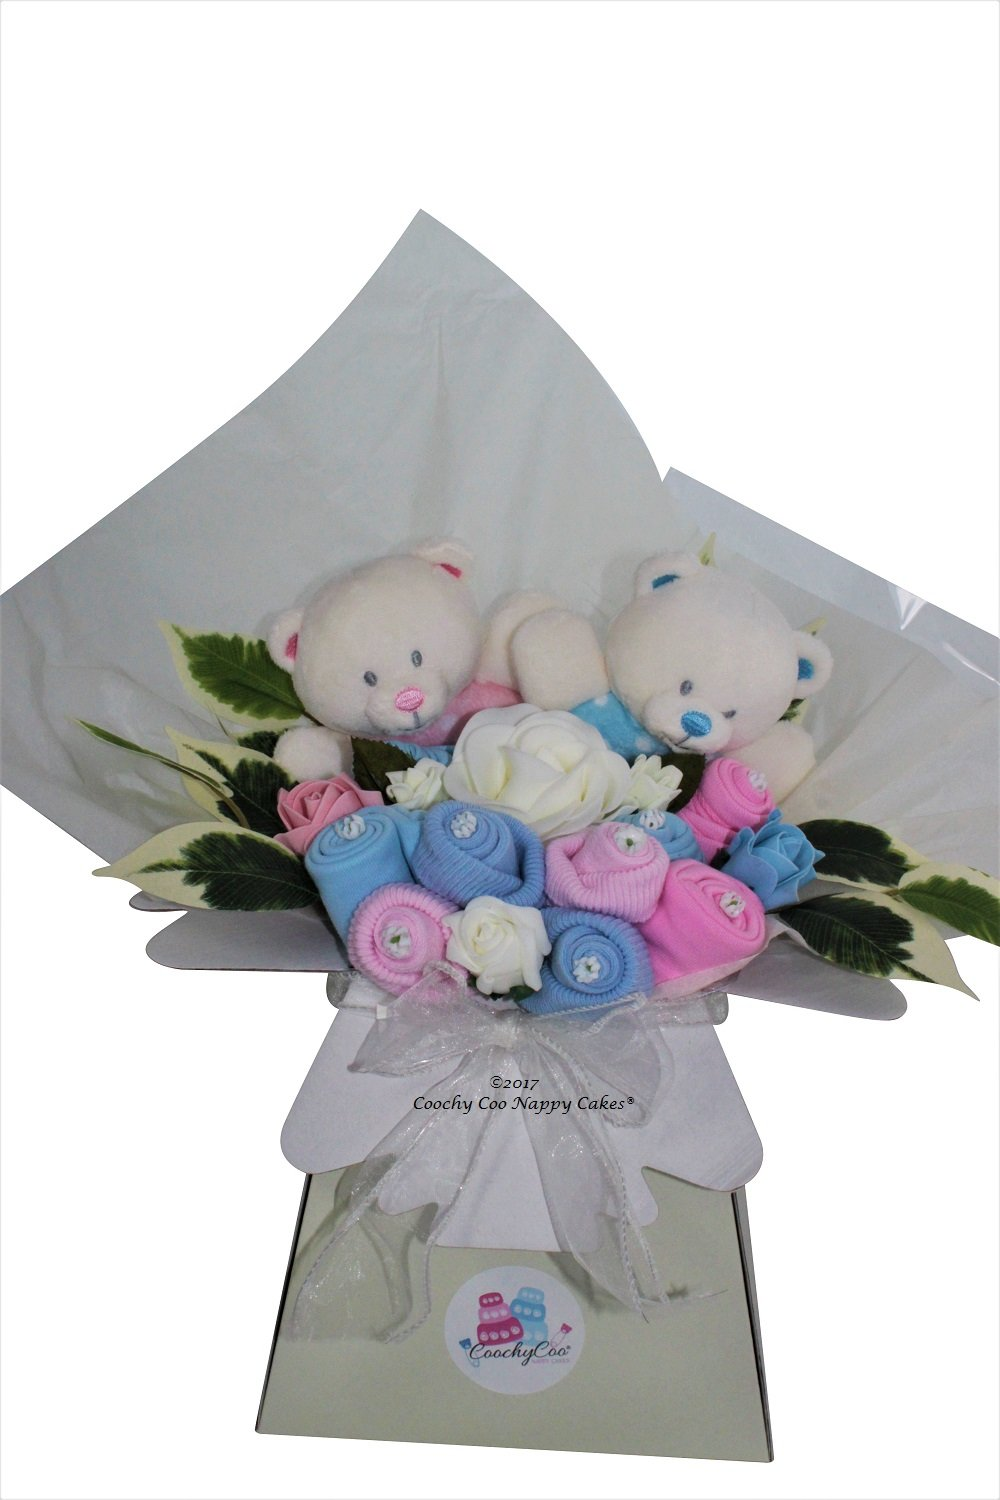 Twins baby girl and boy pink and blue clothes flowers bouquet FREE Delivery